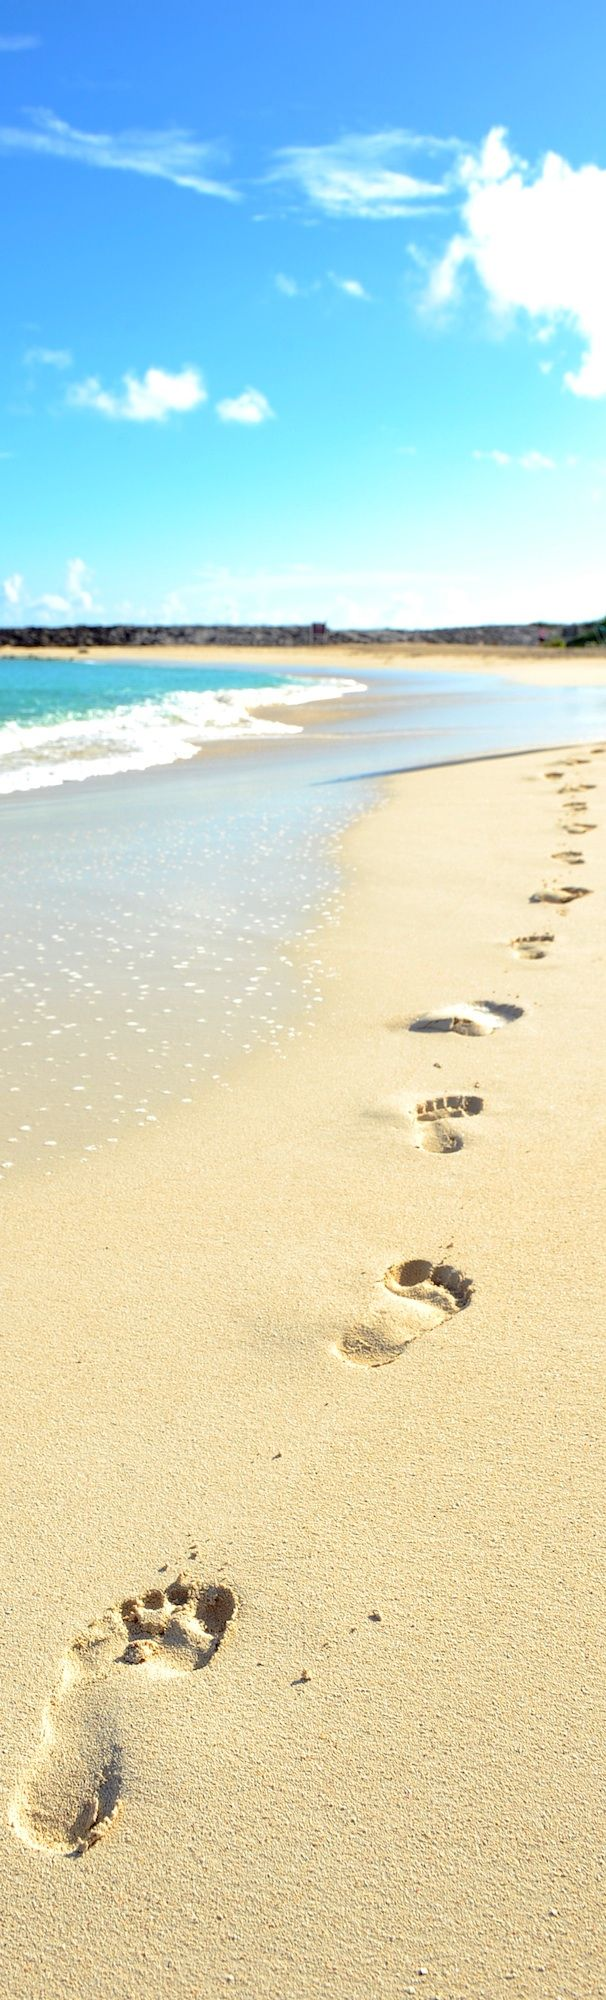 Come take a walk on the beach in The Bahamas!                                                                                                                                                                                 More